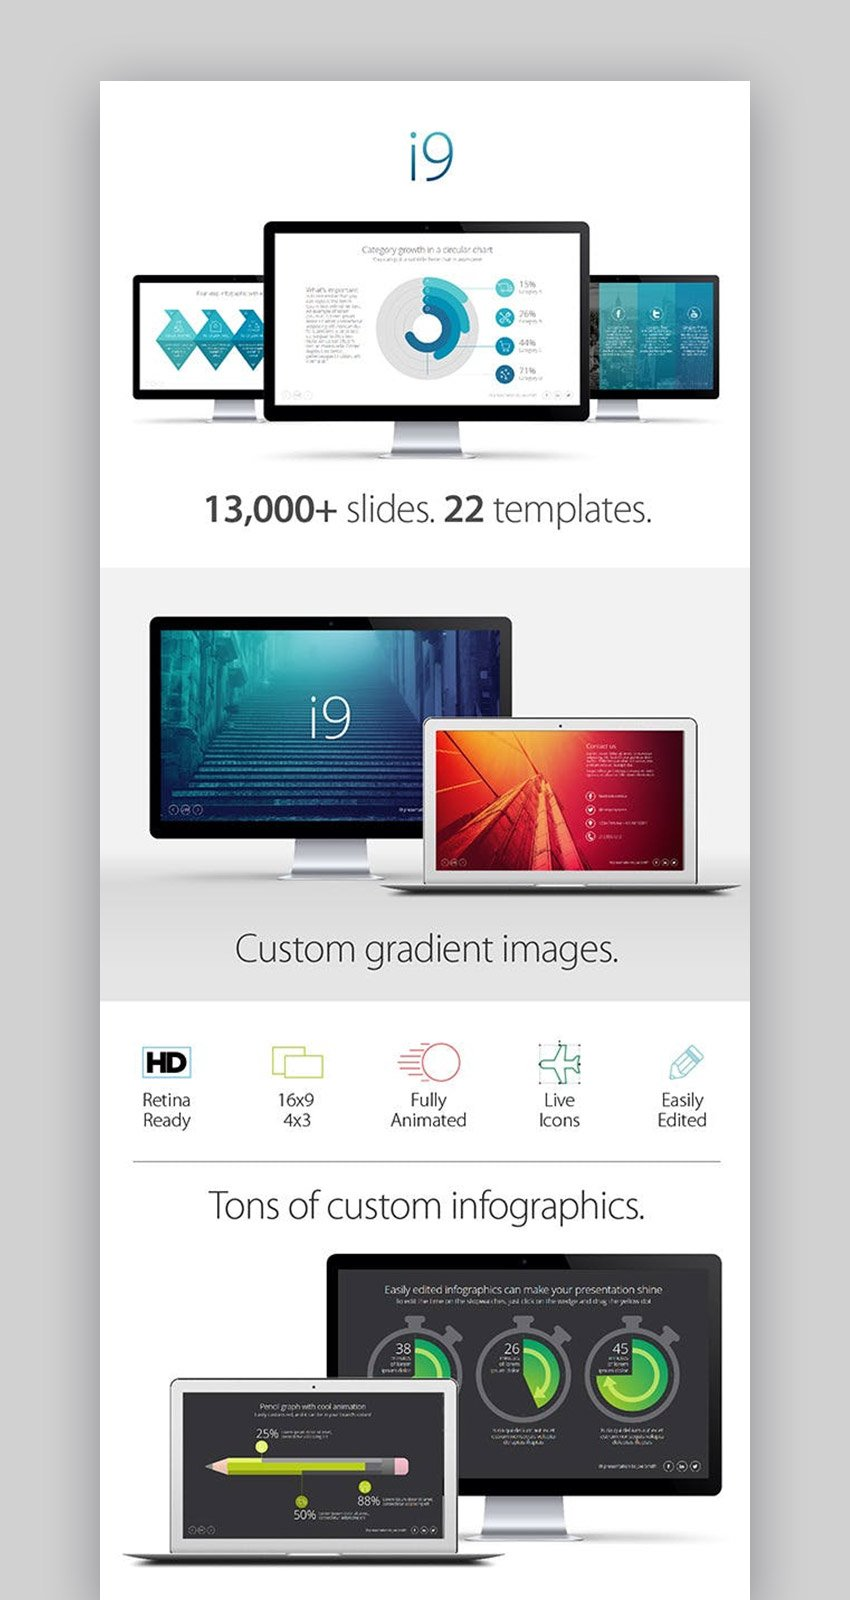 i9 Template Design Systems Workflow Chart Template PowerPoint